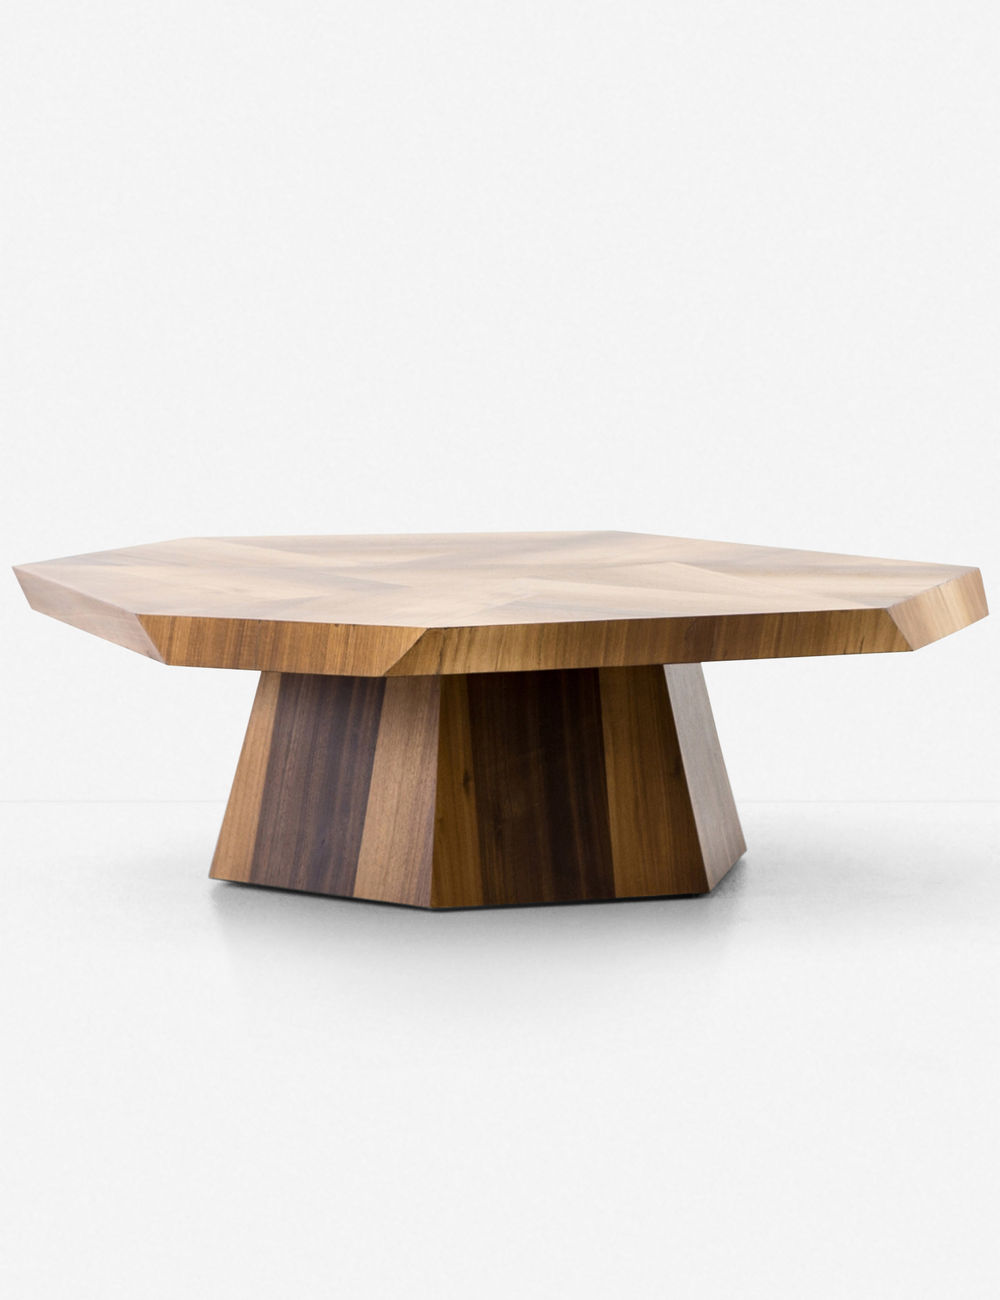 Balen Coffee Table In 2021 Coffee Table Living Room Coffee Table Unique Coffee Table [ 1300 x 1000 Pixel ]